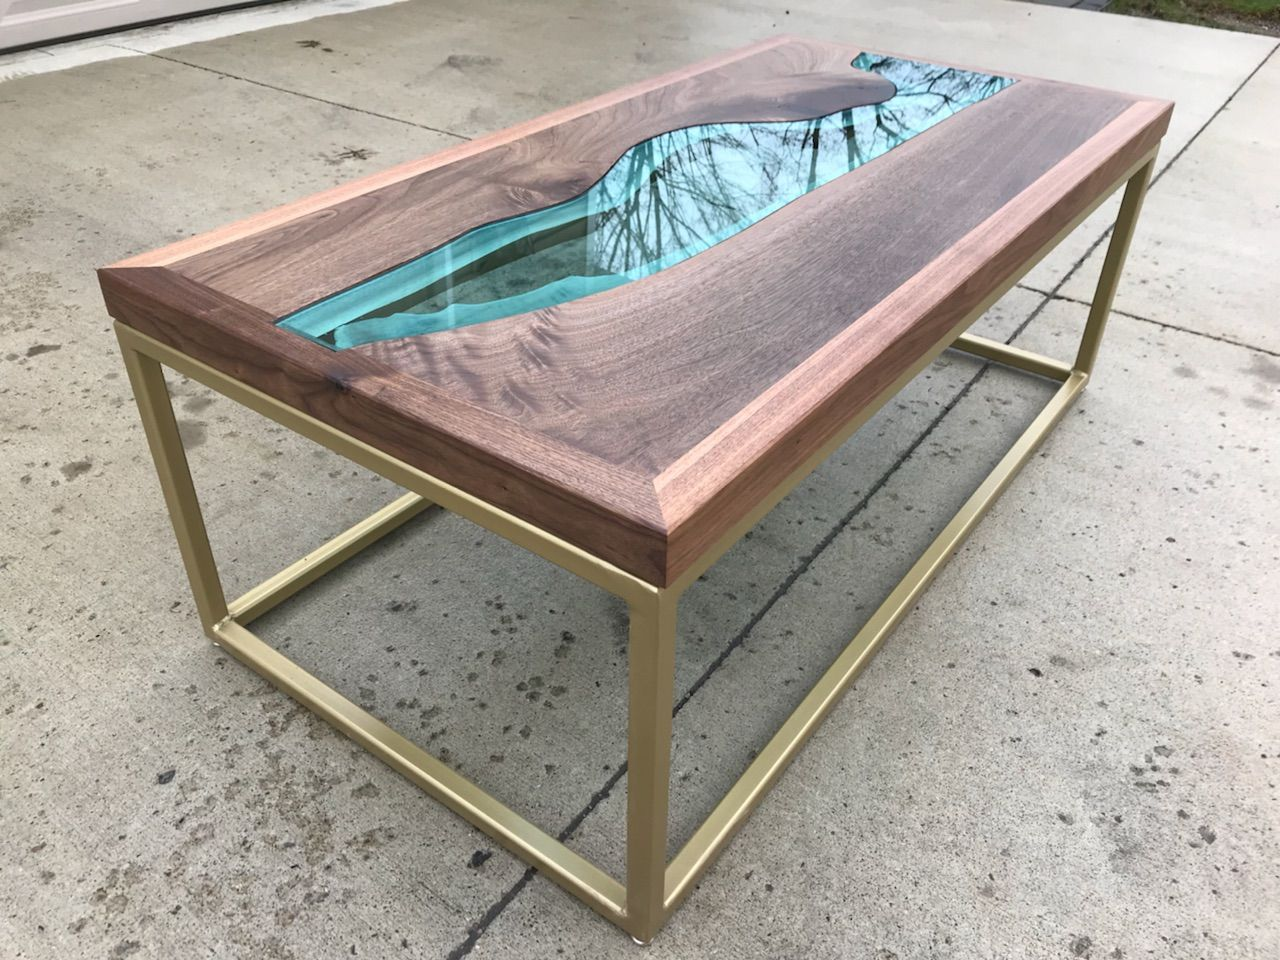 Hand Crafted Walnut River Glass Coffee Table by Villella ...